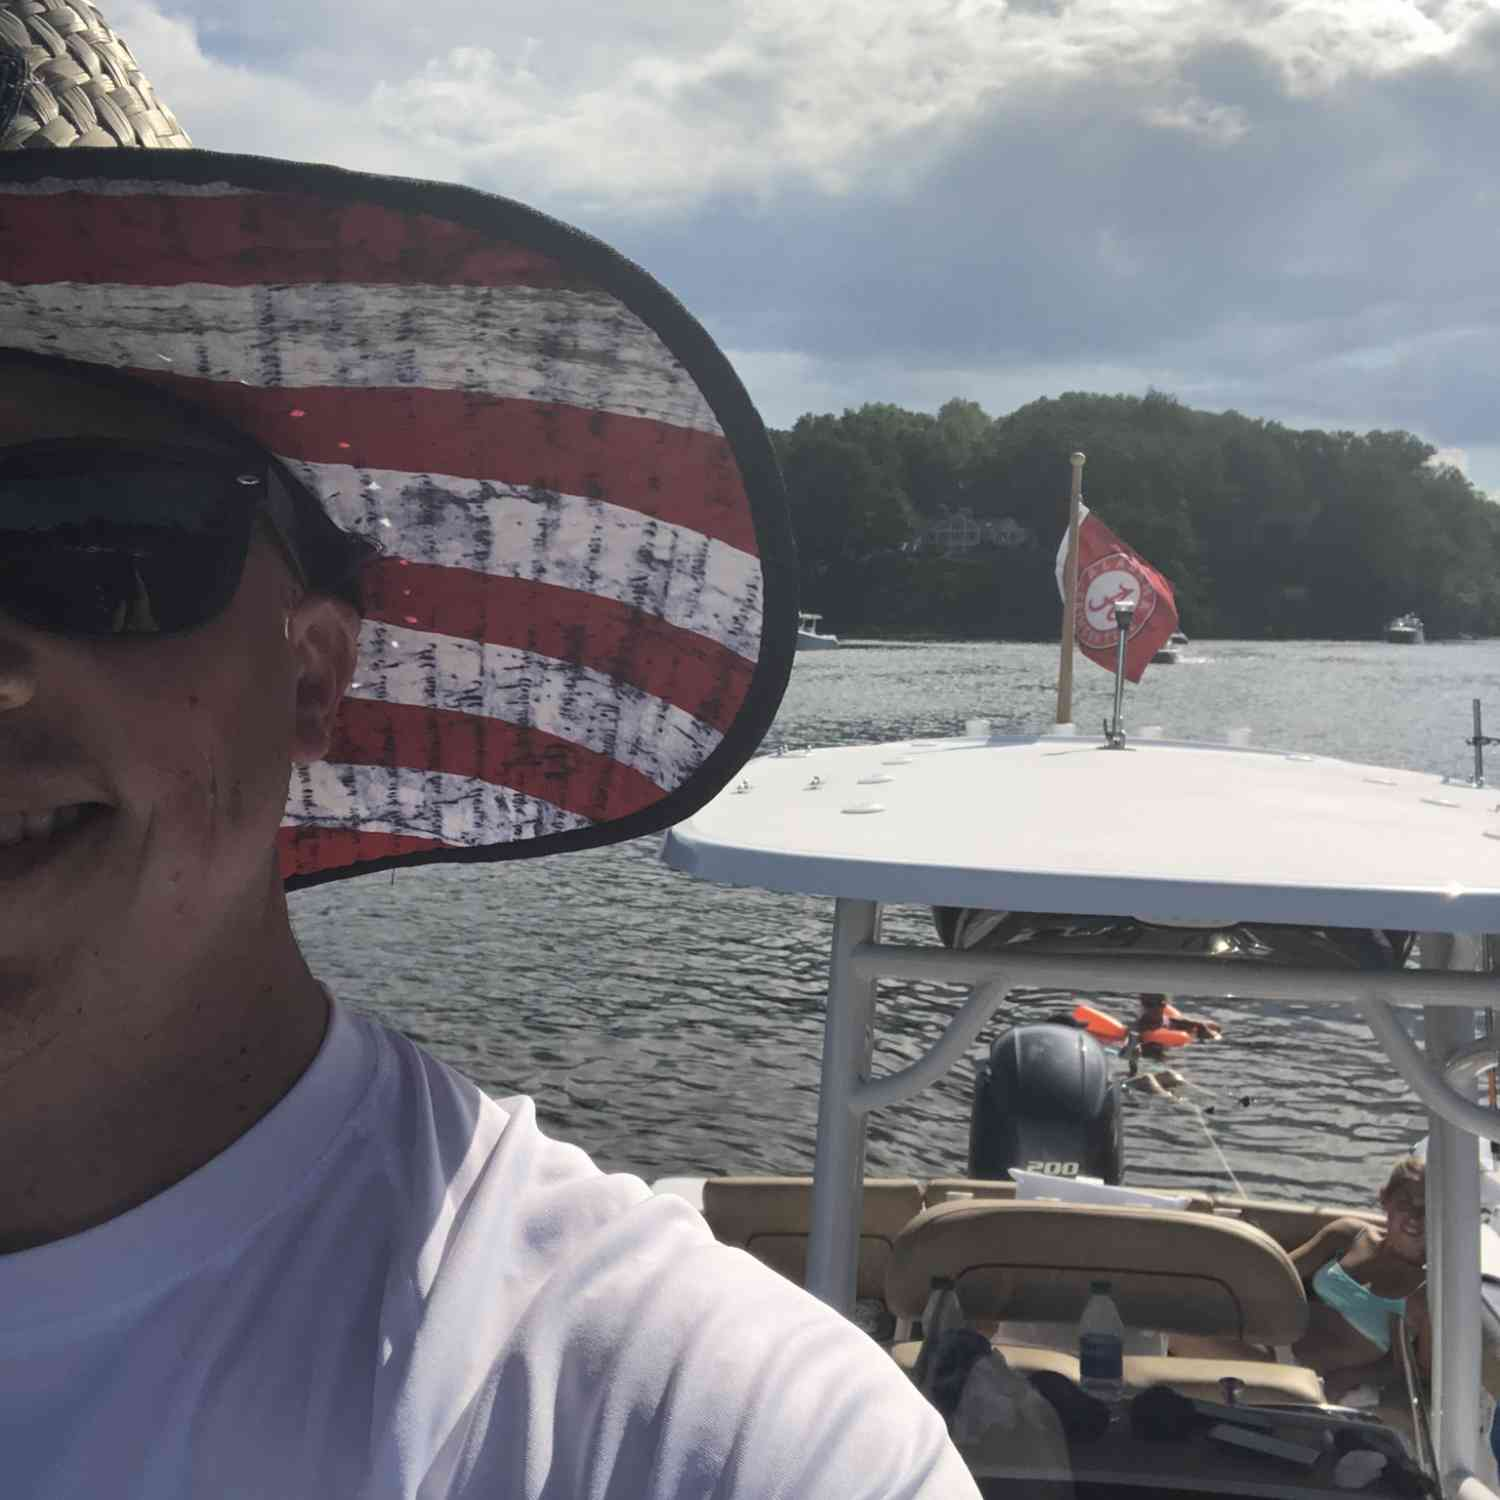 Title: Roll Tide USA - On board their Sportsman Heritage 231 Center Console - Location: Clements Creek, Annapolis. Participating in the Photo Contest #SportsmanJuly2020